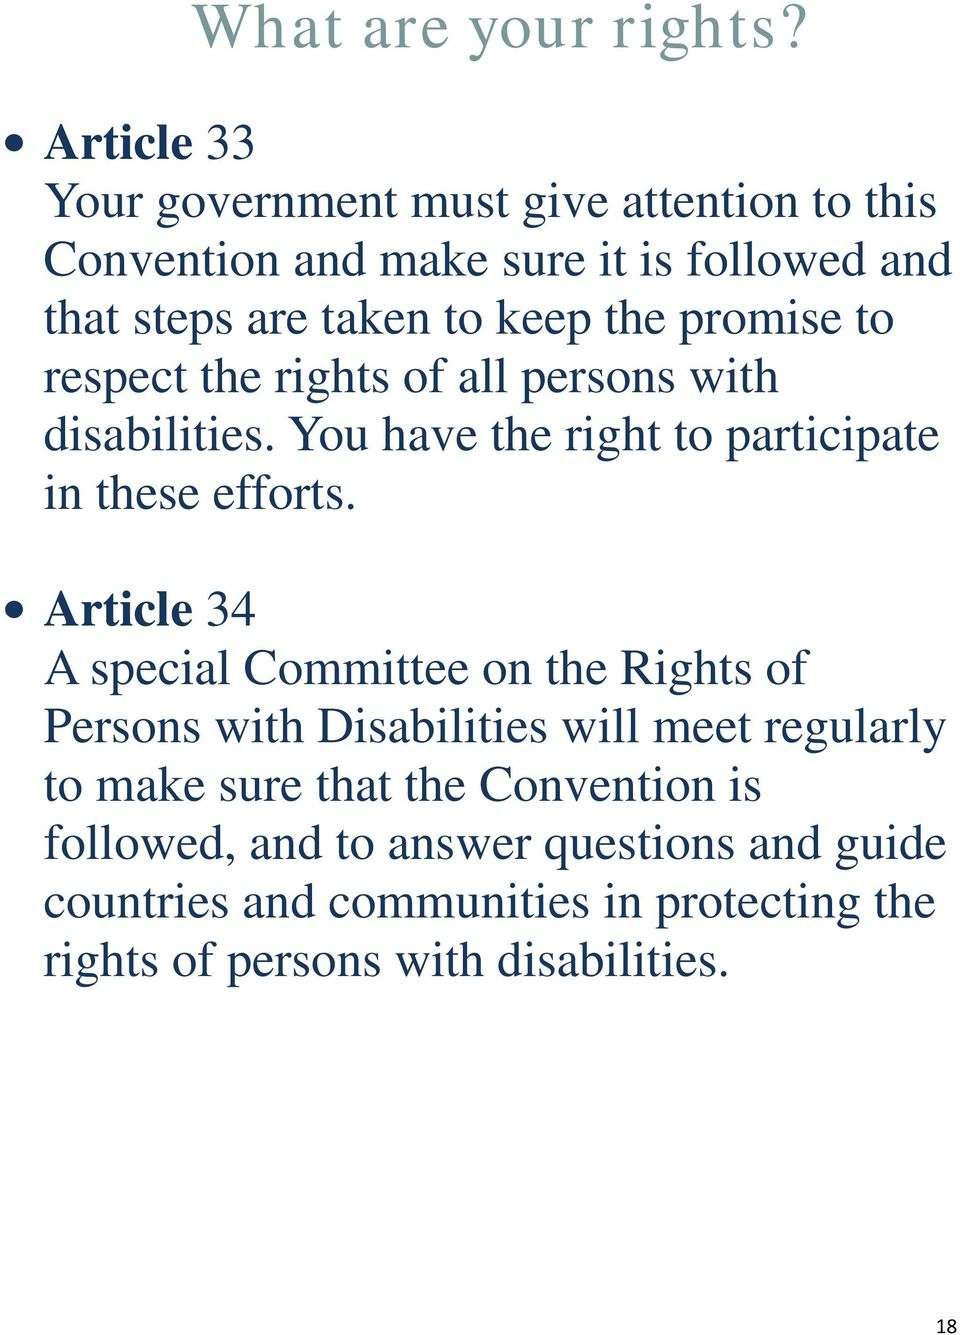 Article 34 A special Committee on the Rights of Persons with Disabilities will meet regularly to make sure that the Convention